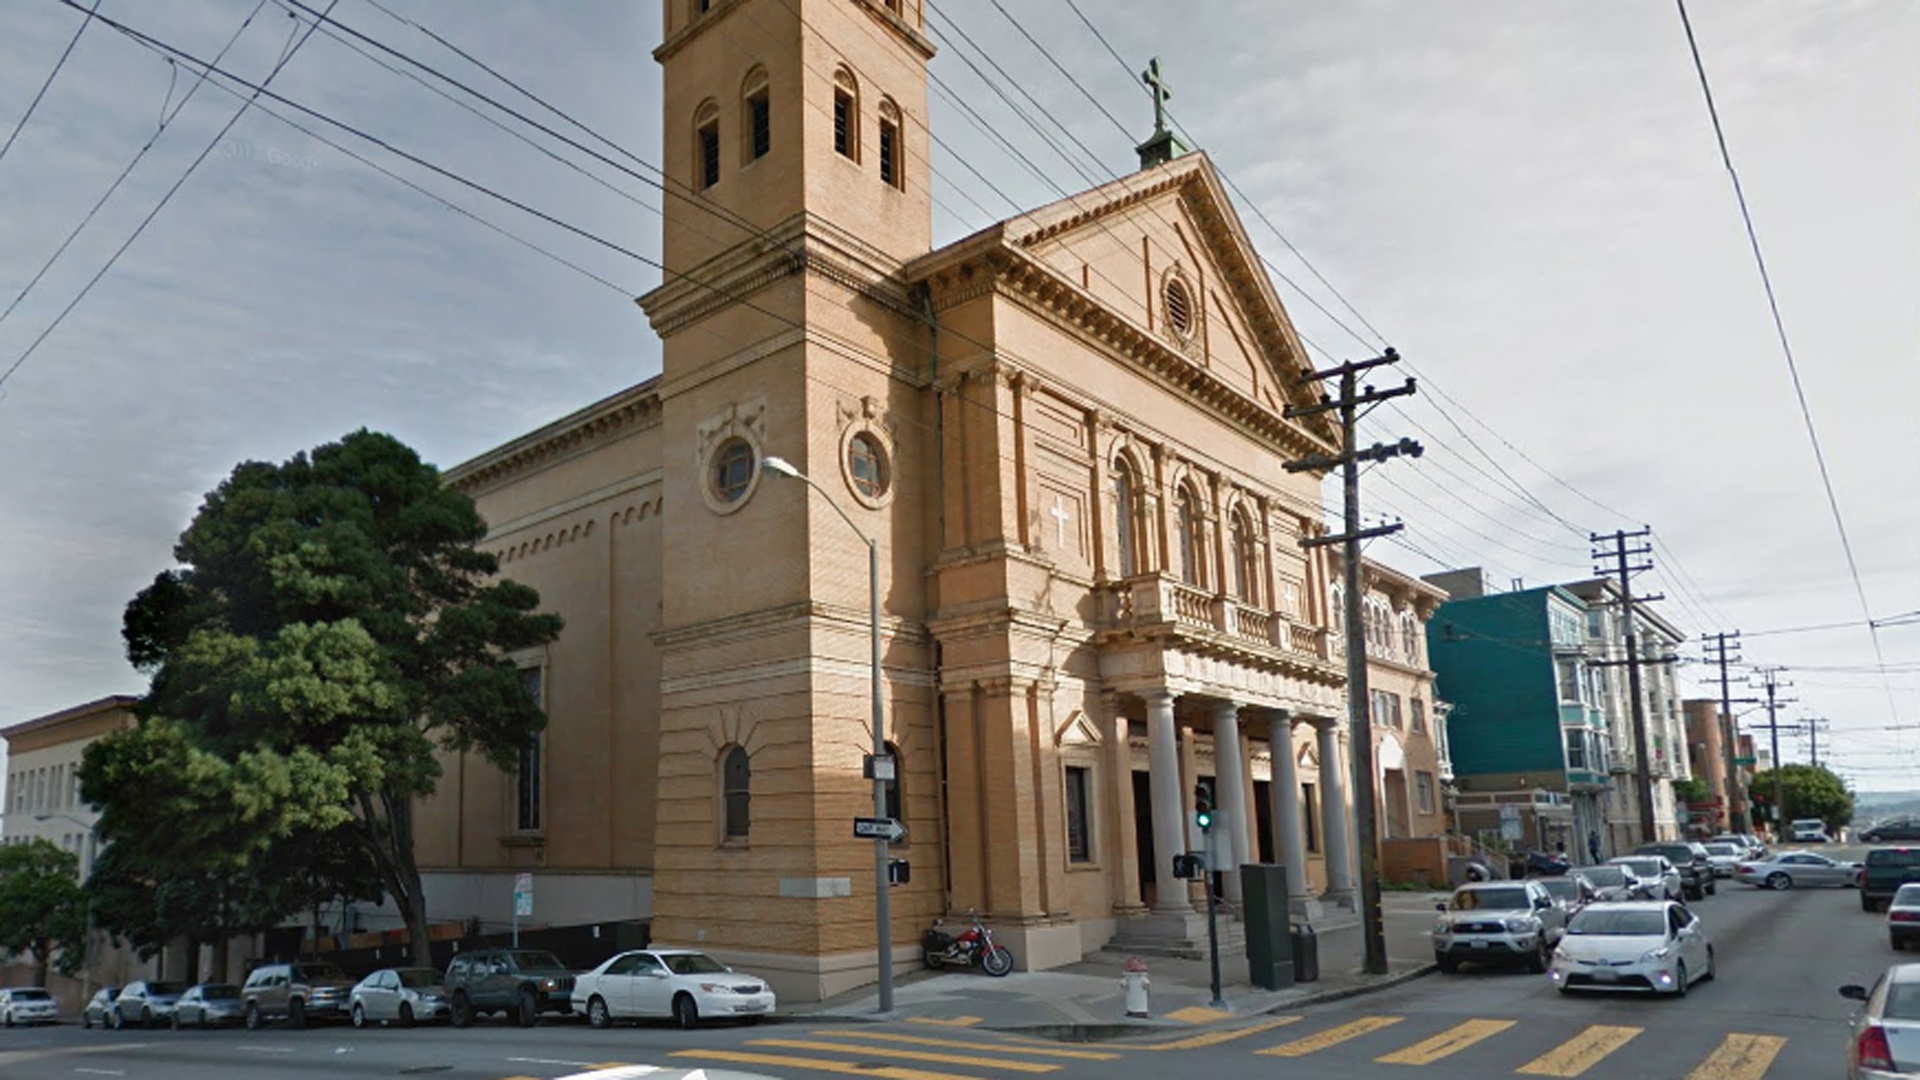 The attack took place outside the Church of 8 Wheels skating rink in San Francisco, seen in this Google Maps street view image.